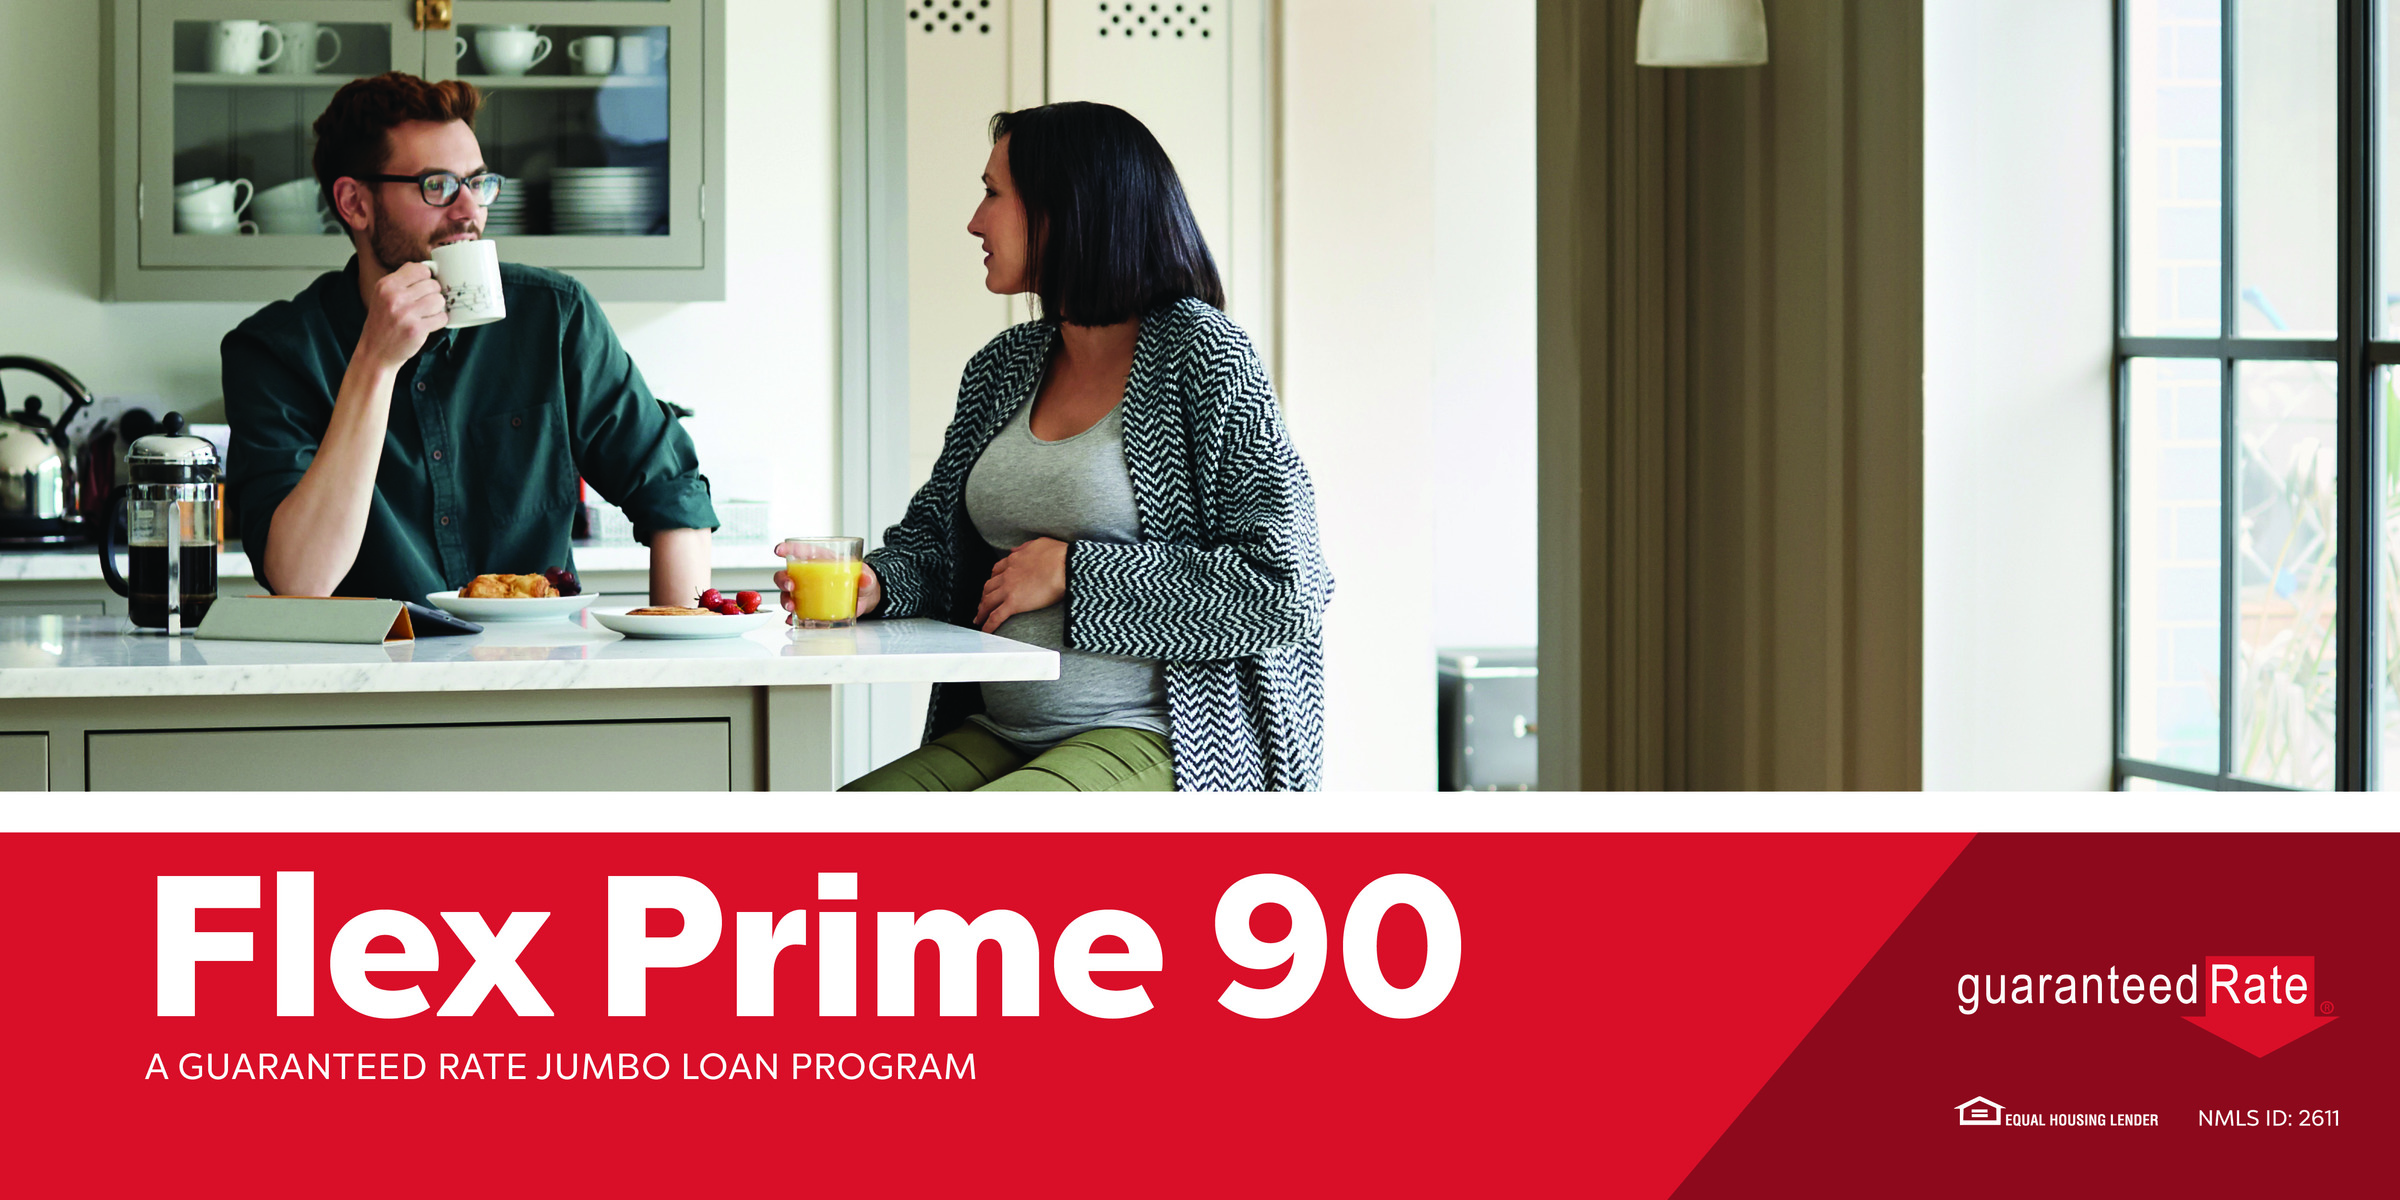 Higher LTV Loan Amount Combinations At Competitive Rates Without Mortgage Insurance